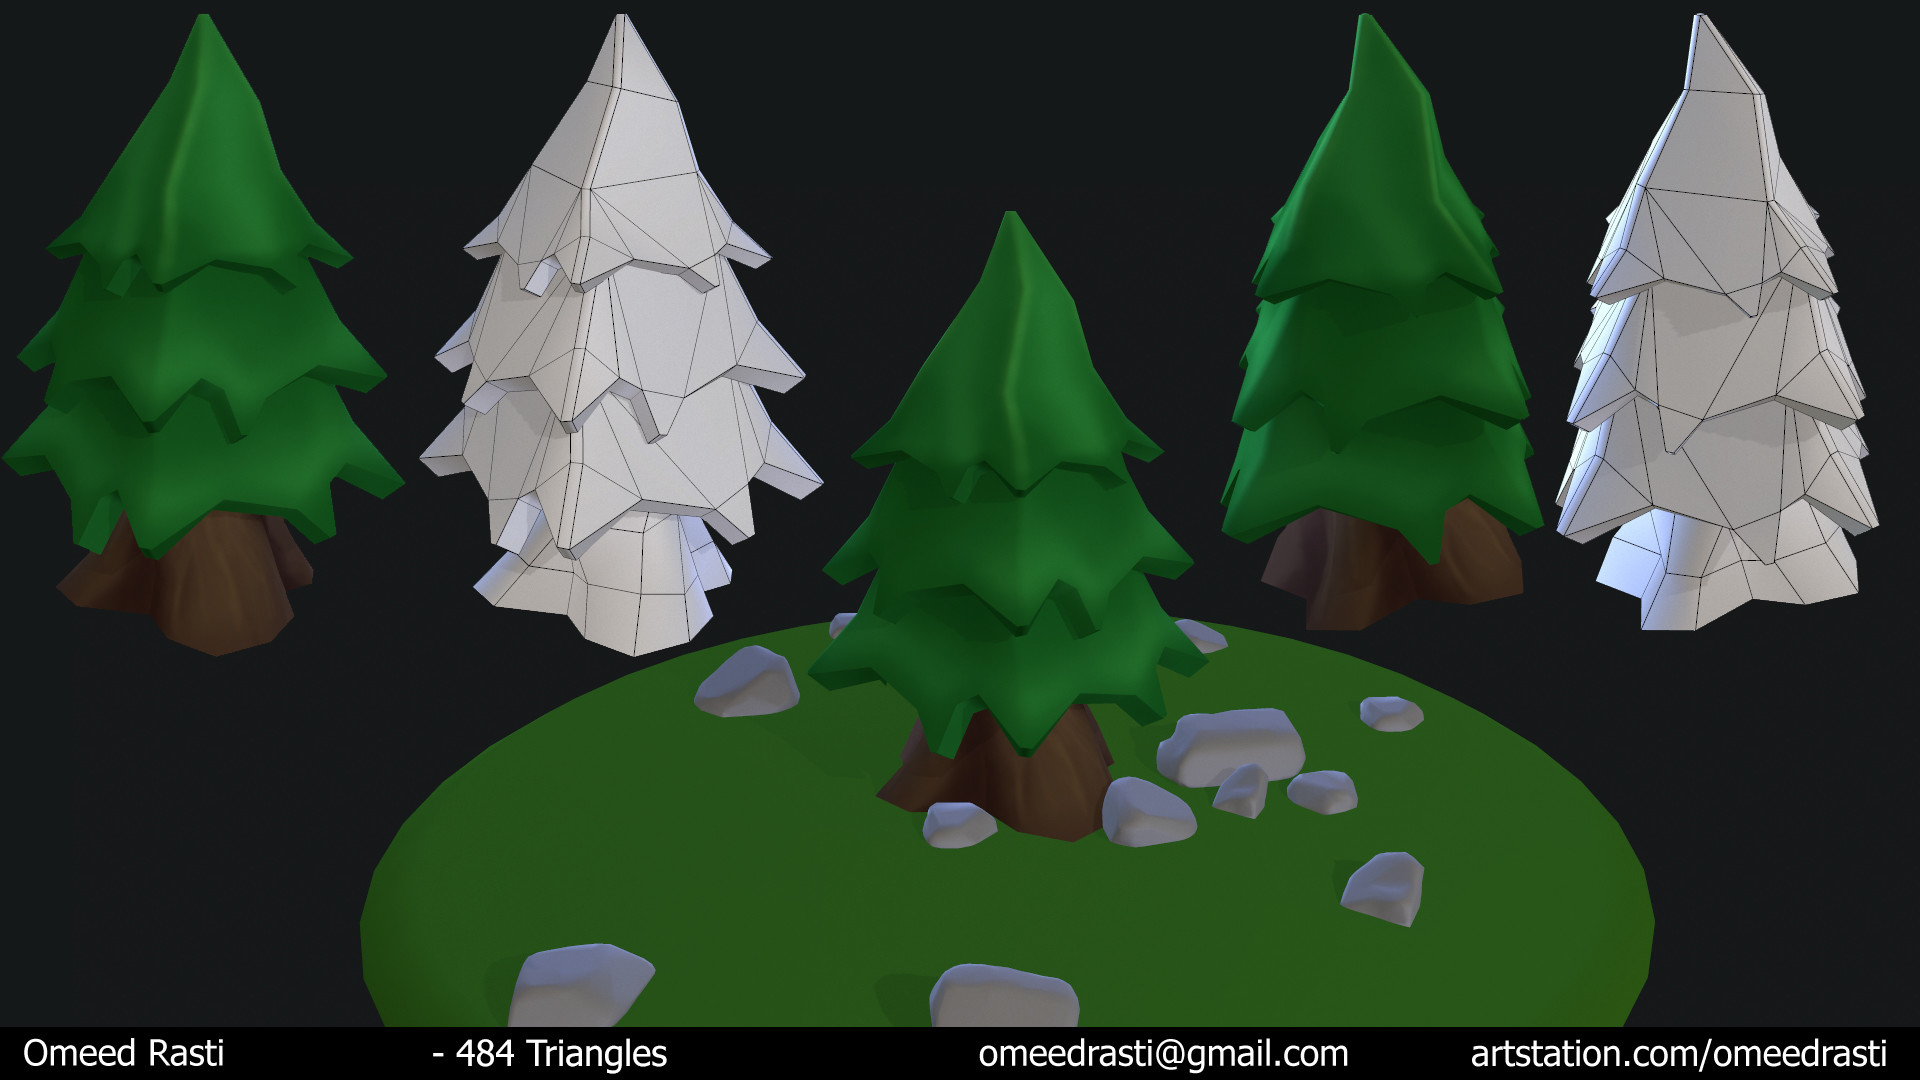 modeling done in maya texturing done with photoshop - Polytree Christmas Tree